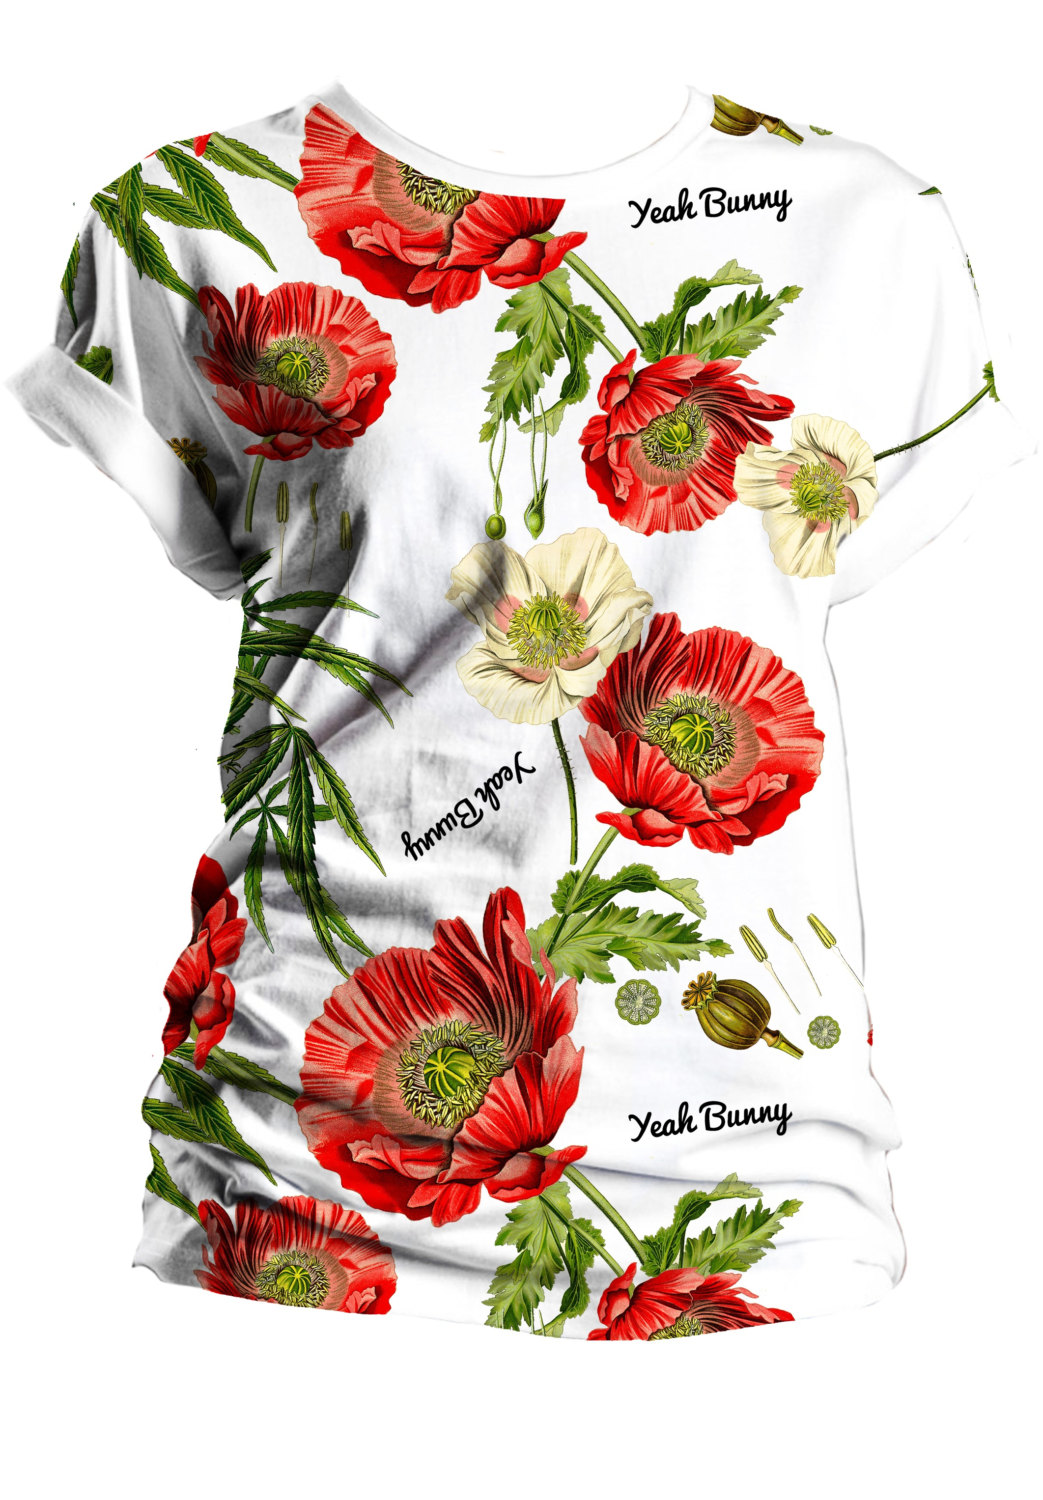 Tshirt - Poppies and Weed - by Yeah Bunny